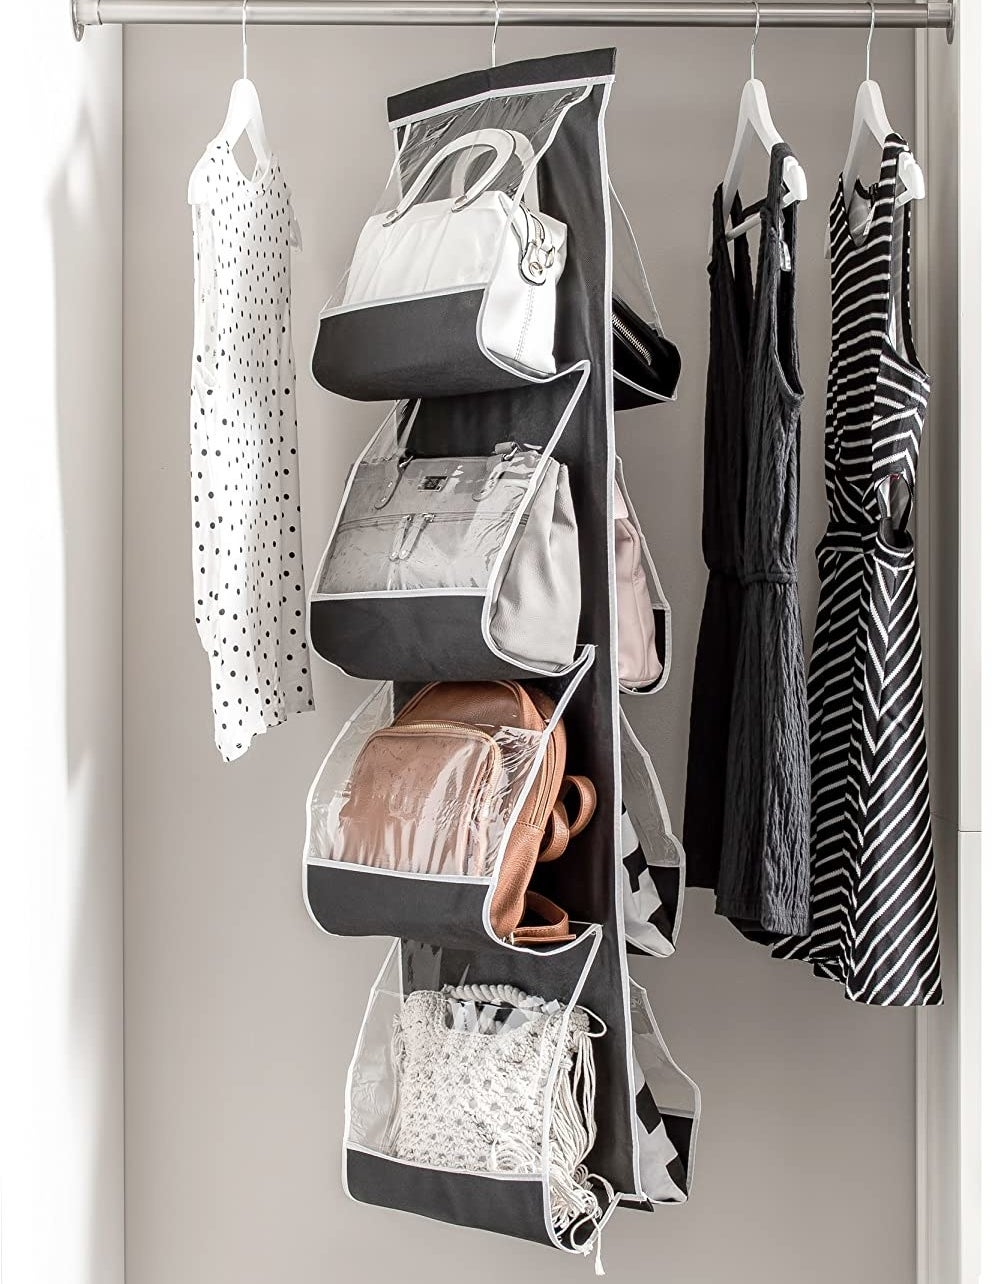 The handbag holder in a closet with eight bags inside